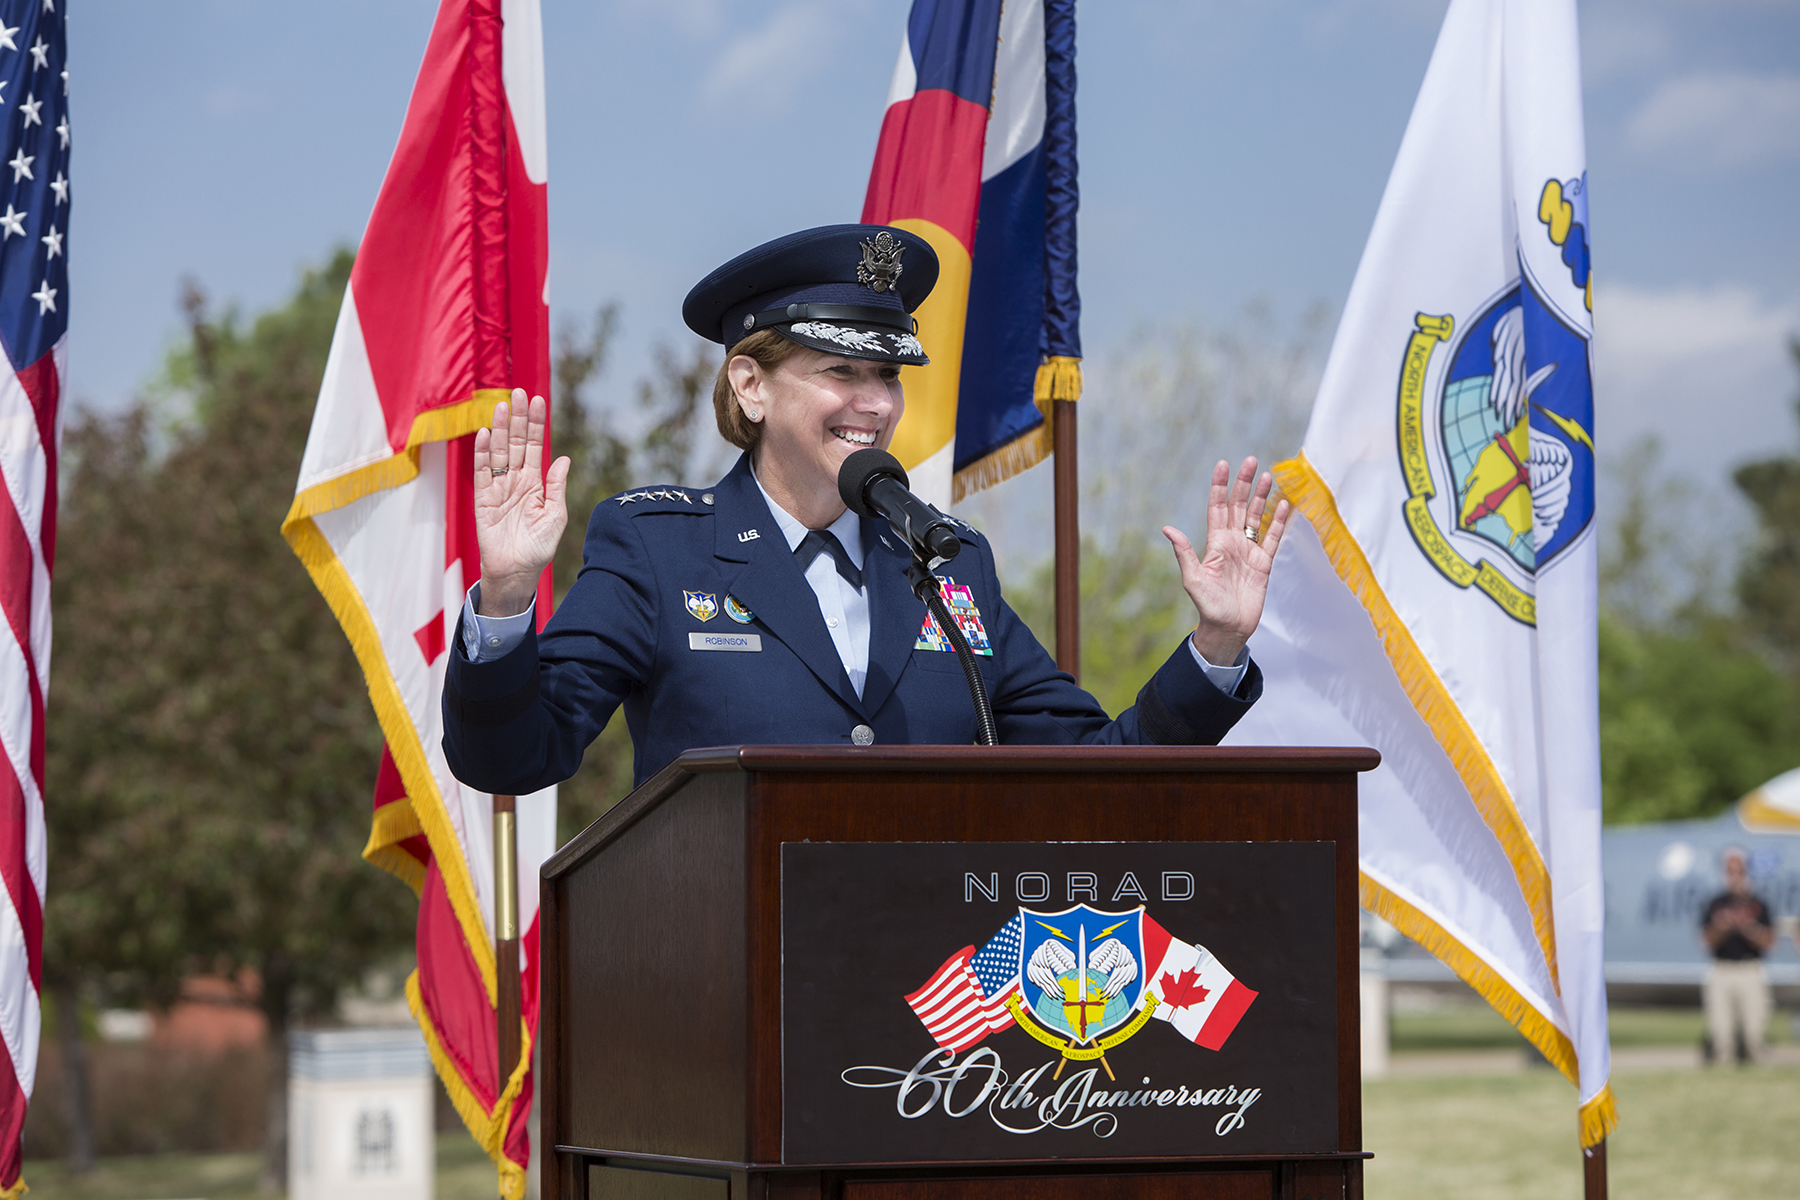 U.S. Air Force General Lori Robinson, Commander of the North American Aerospace Defense Command and U.S. Northern Command, speaks during the NORAD 60th anniversary ceremony at Peterson Air Force Base, Colorado, on May 12, 2018. PHOTO: U.S. DoD, Lewis Carlyle